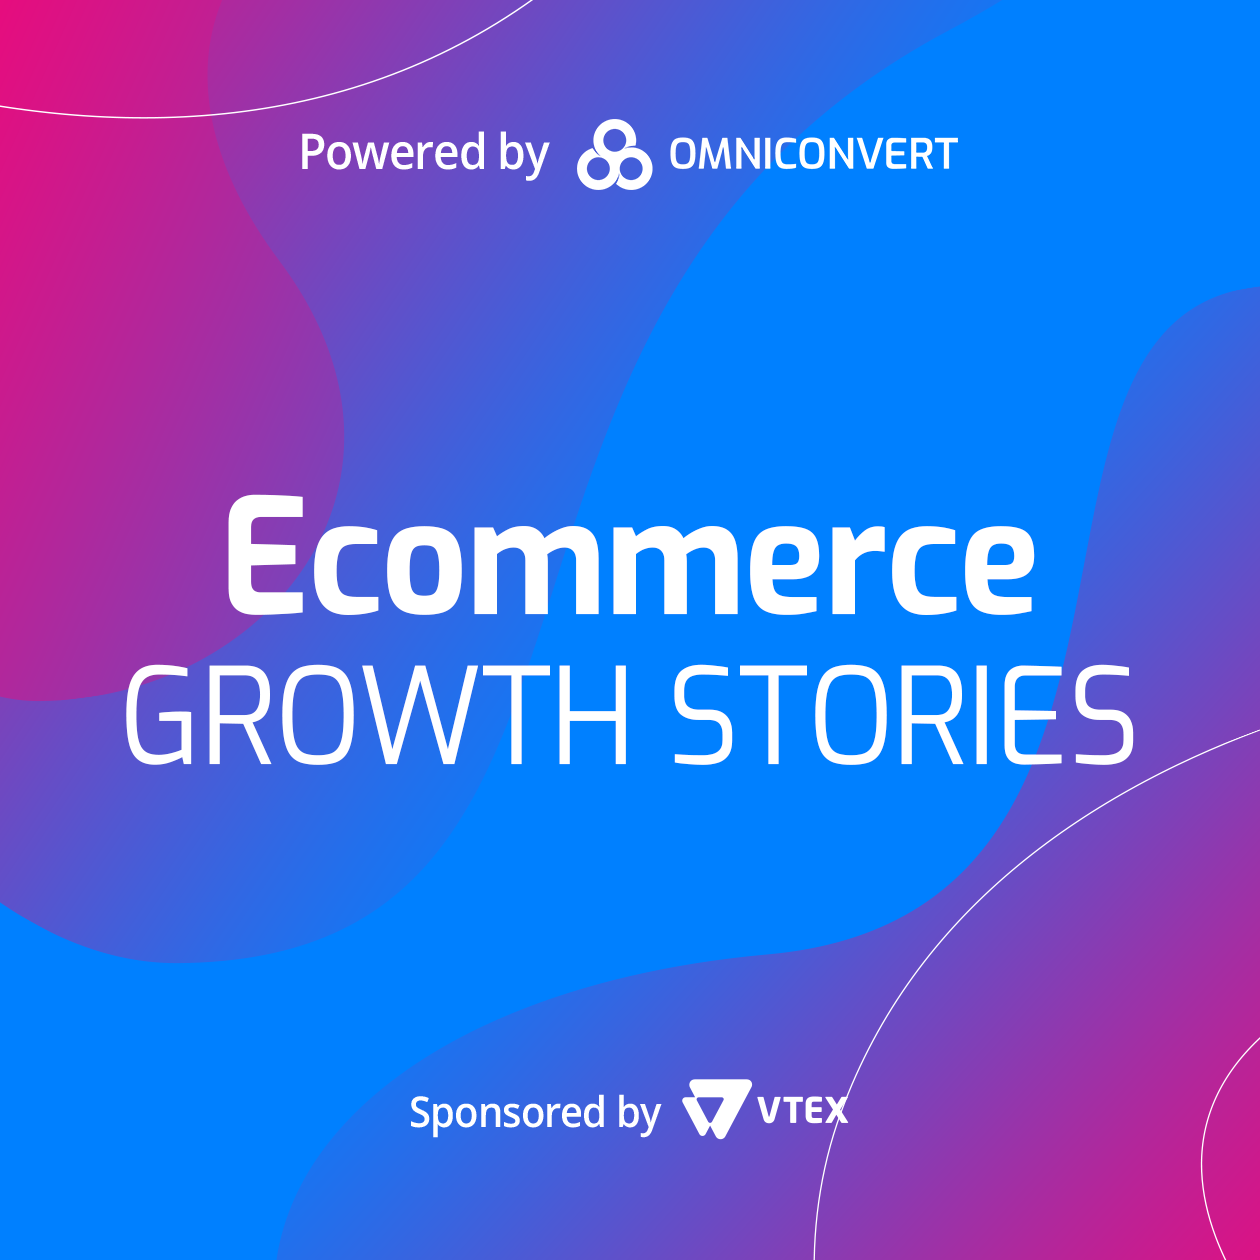 Ecommerce Growth Stories